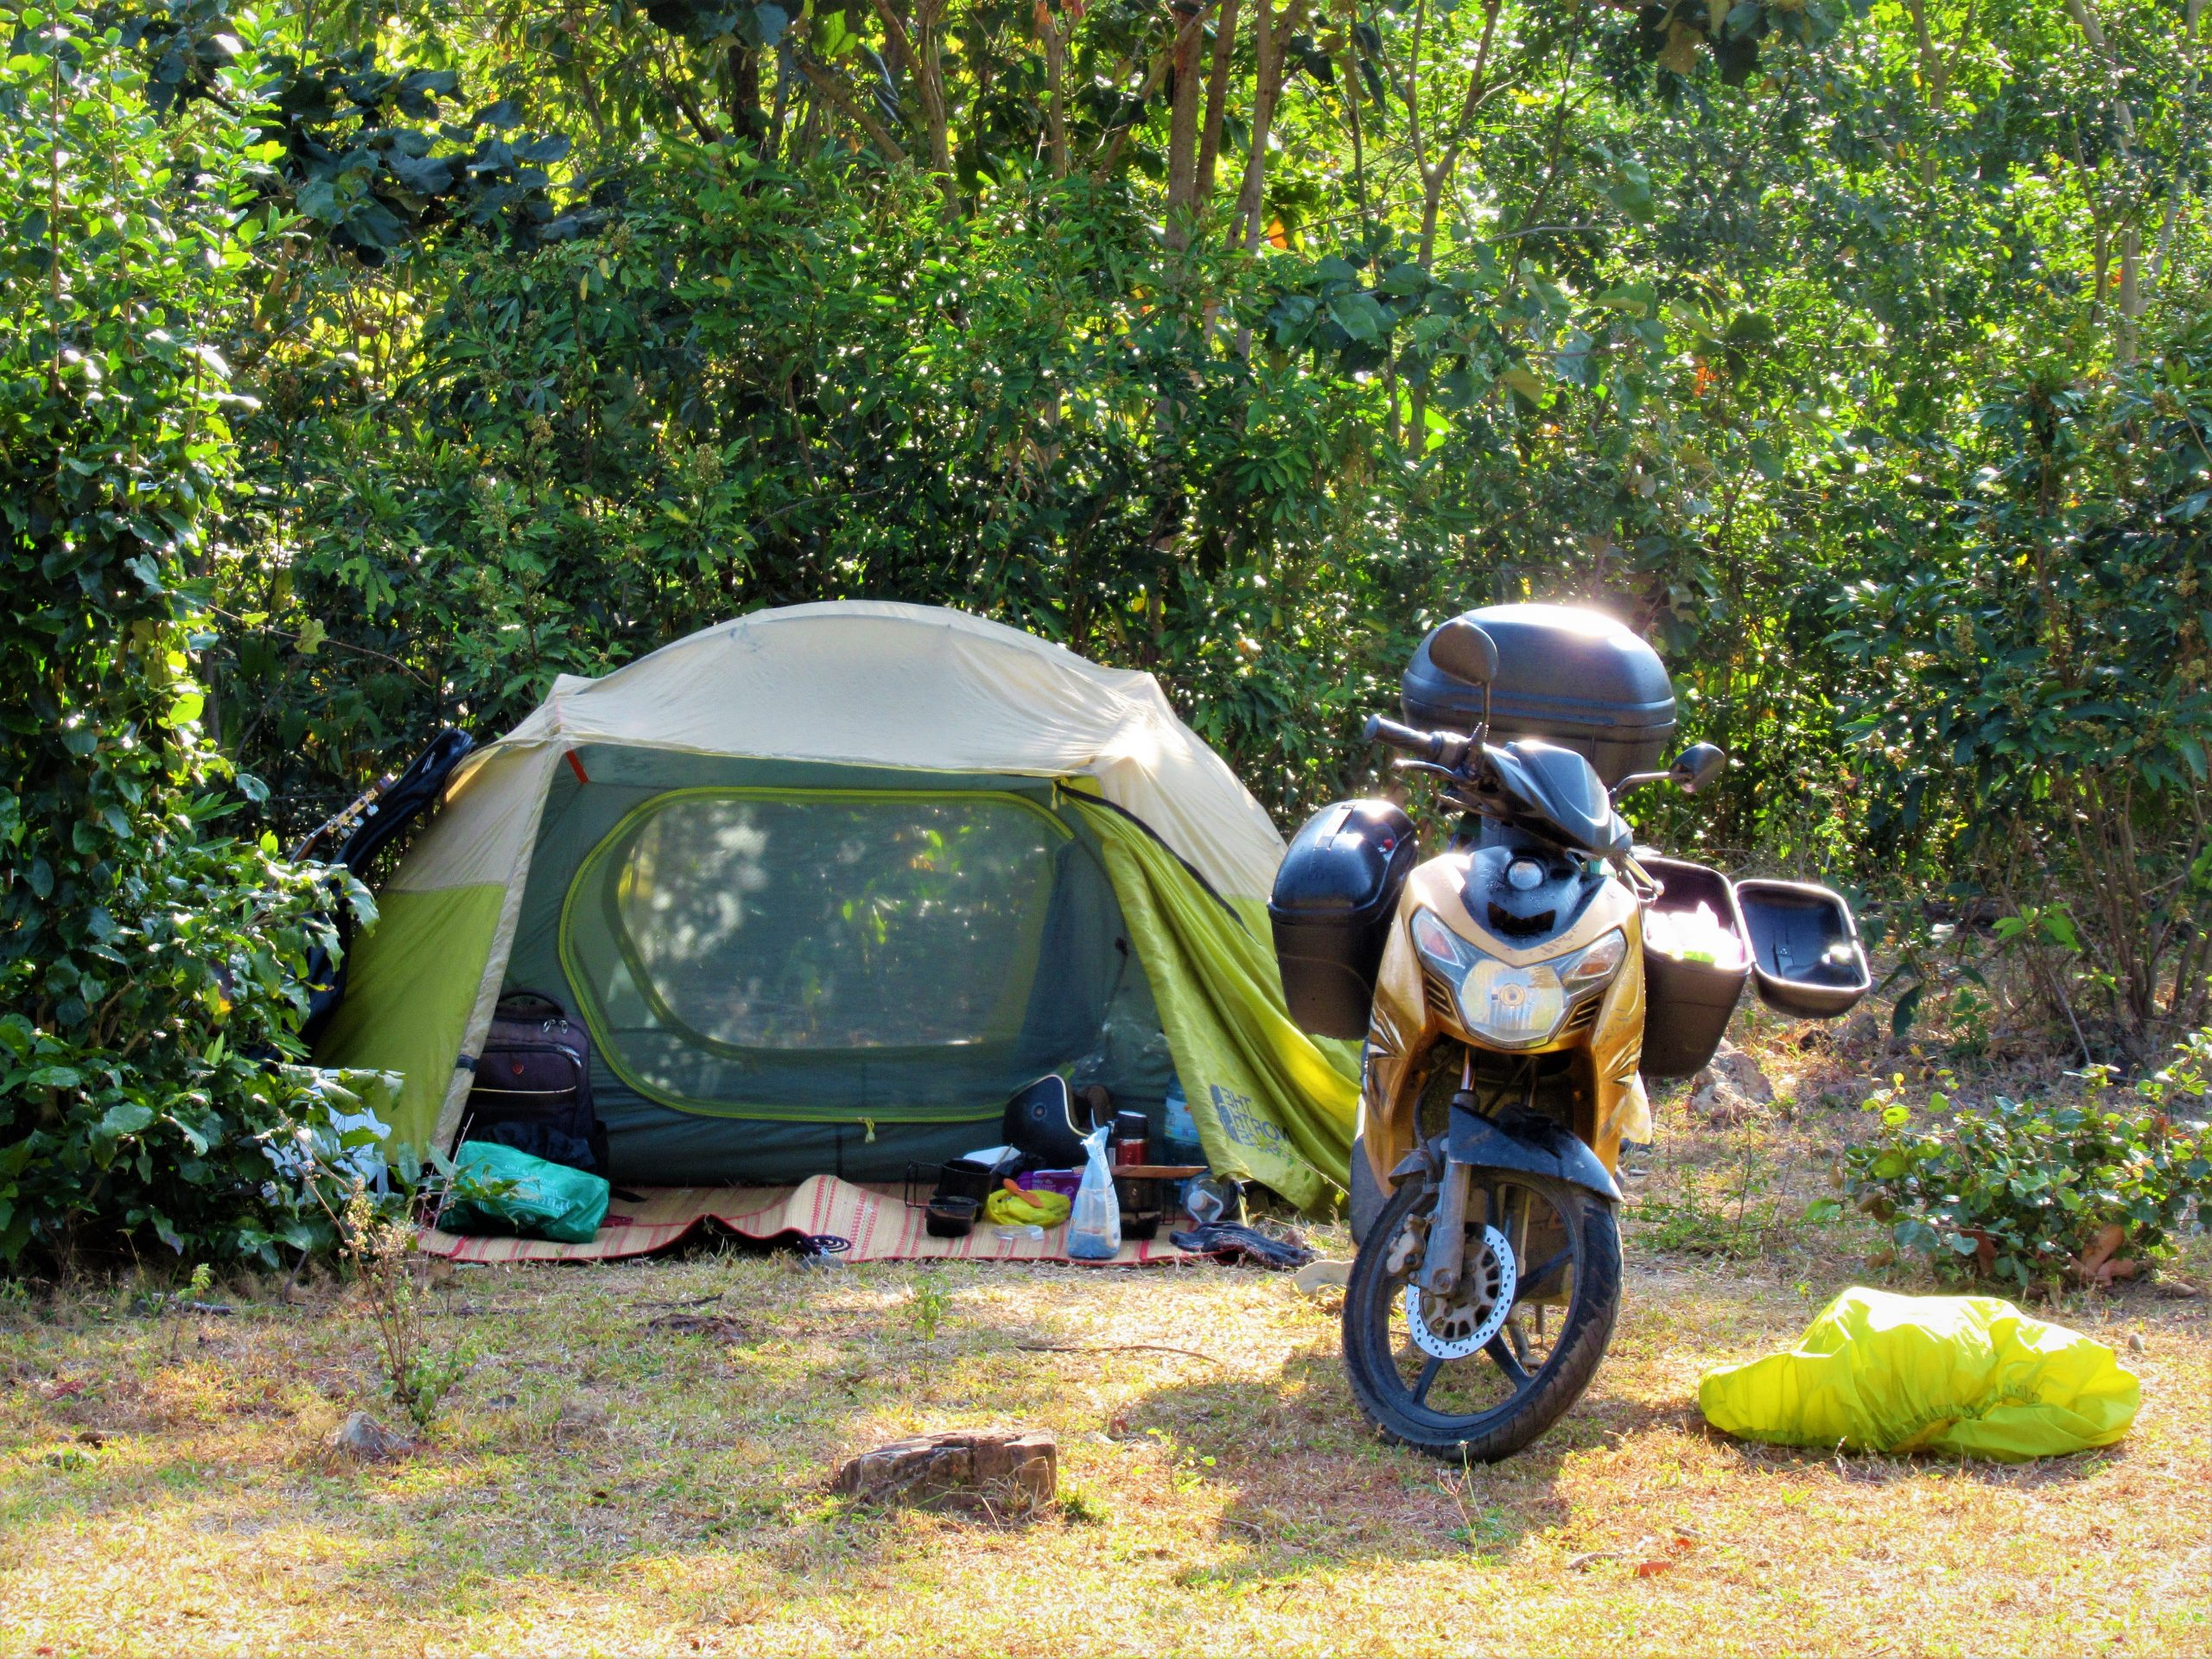 Motocamping in the Central Highlands during the dry season